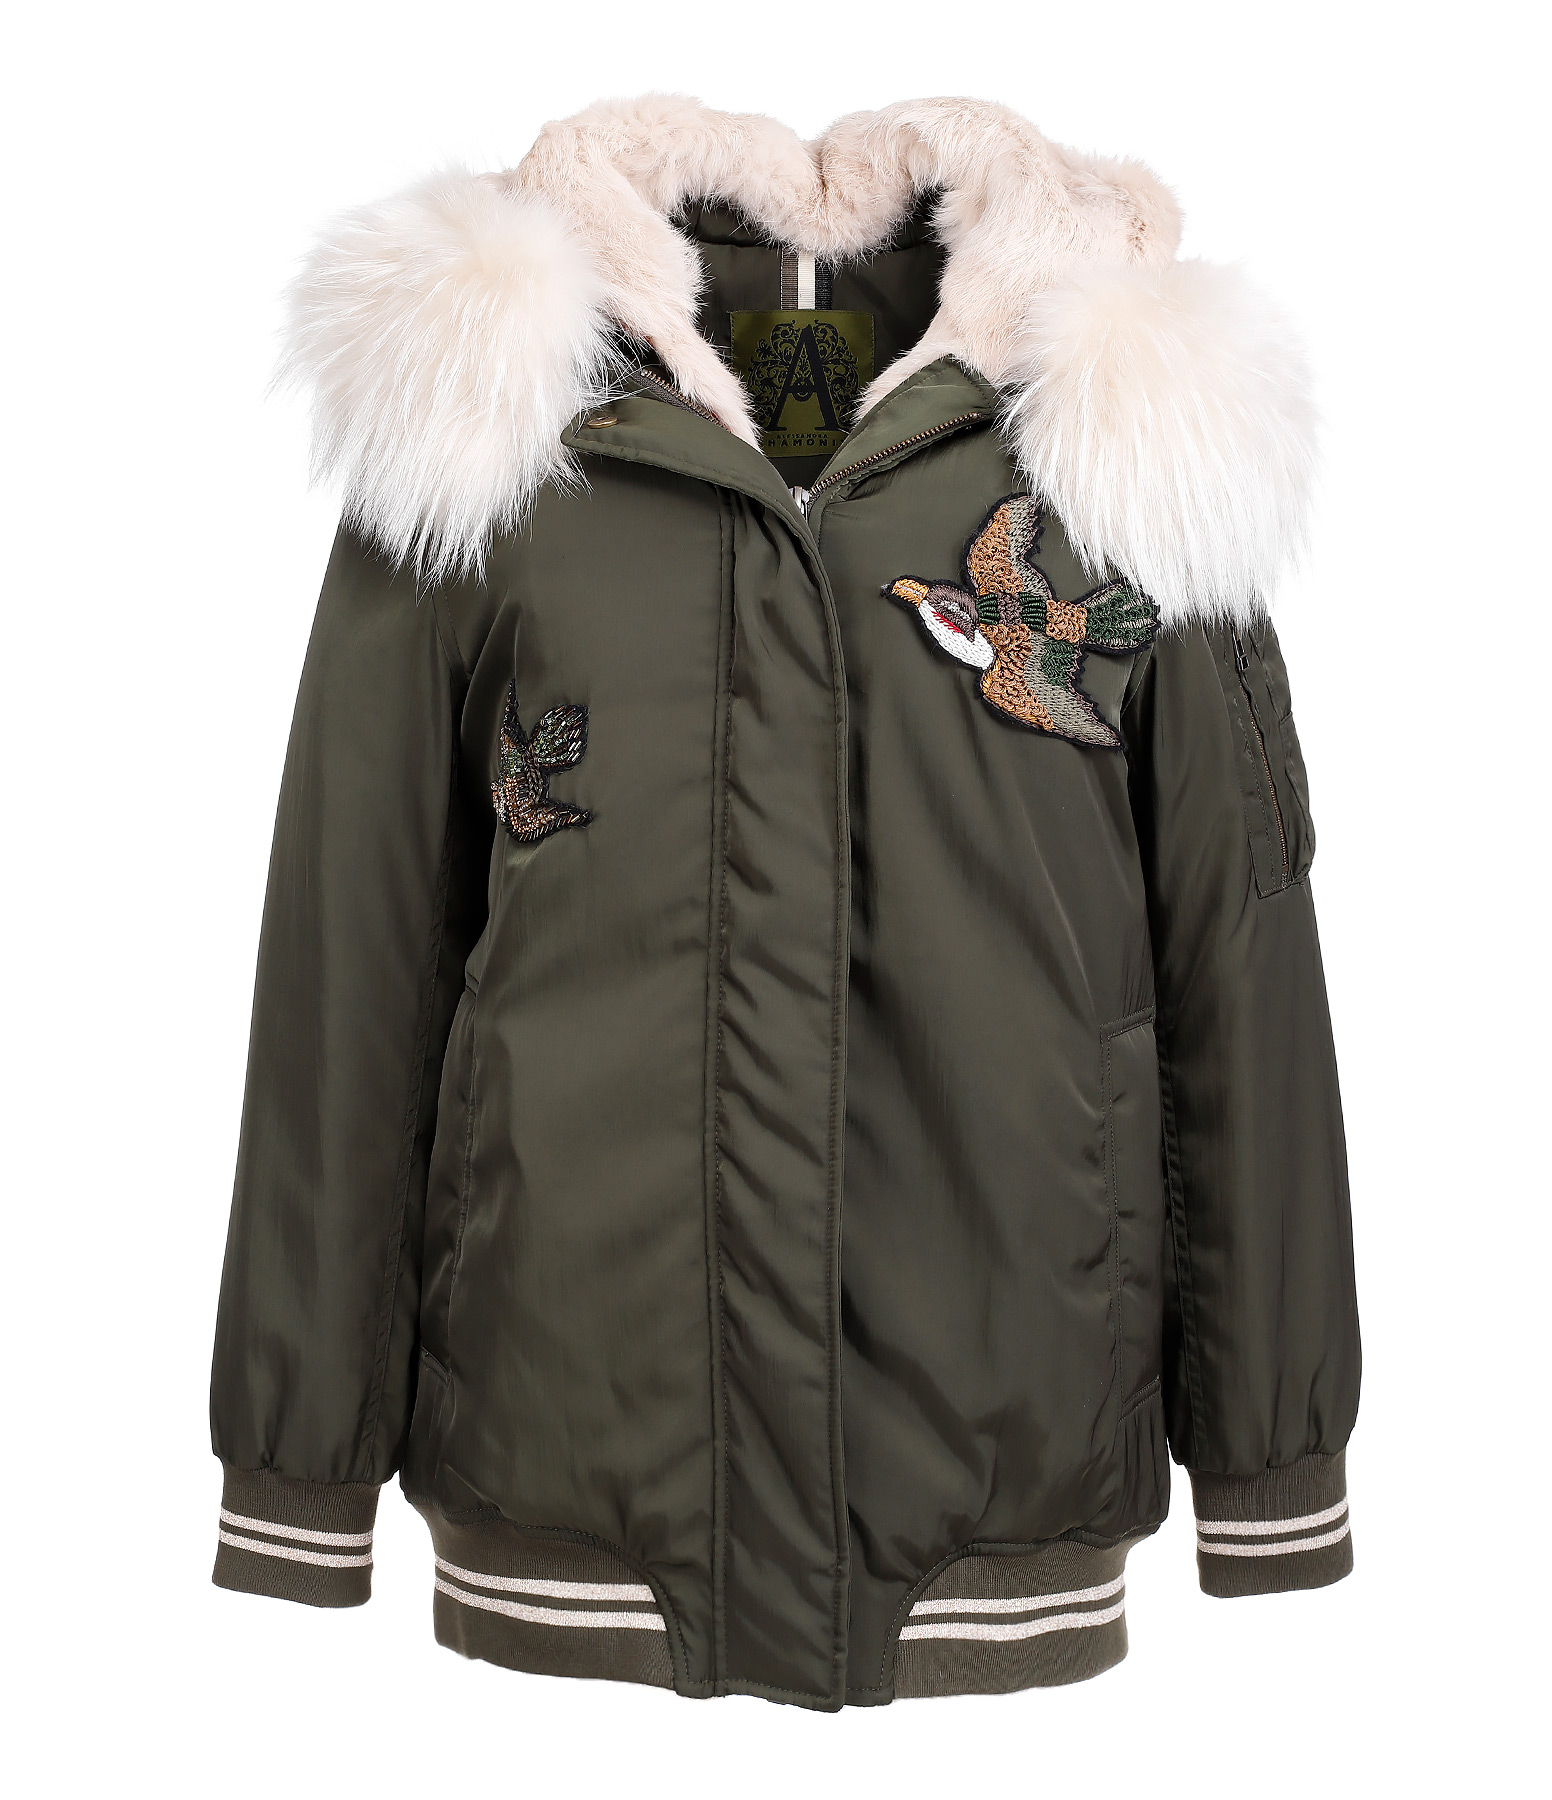 Blouson Constance Military Stucco